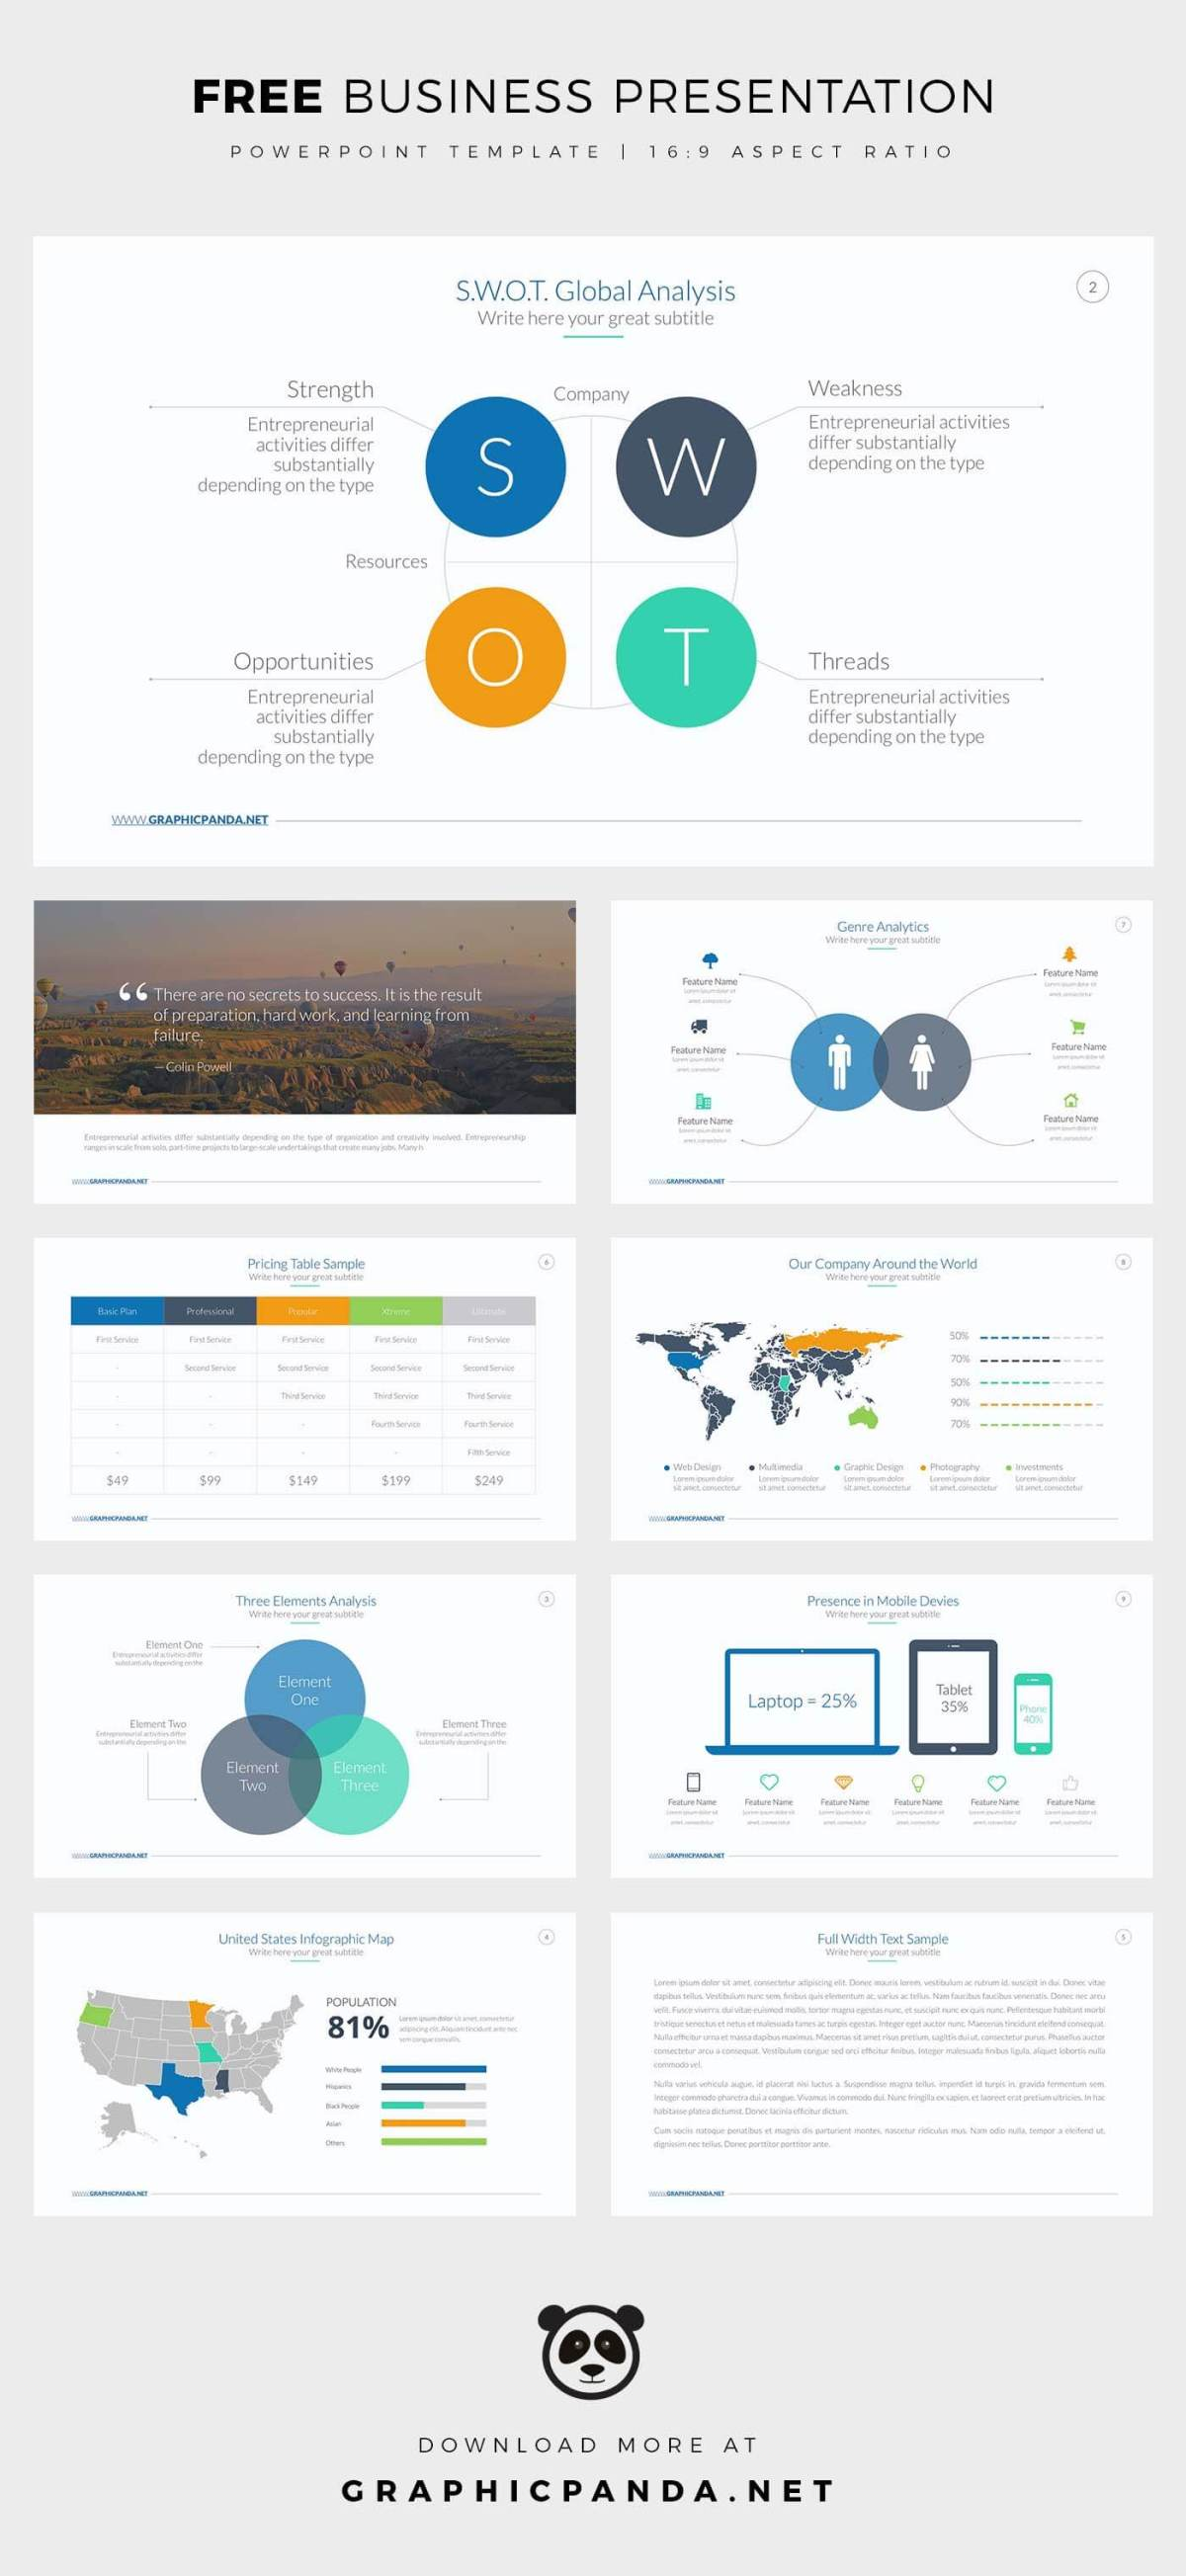 Free business powerpoint templates professional and easy to edit free business powerpoint template flashek